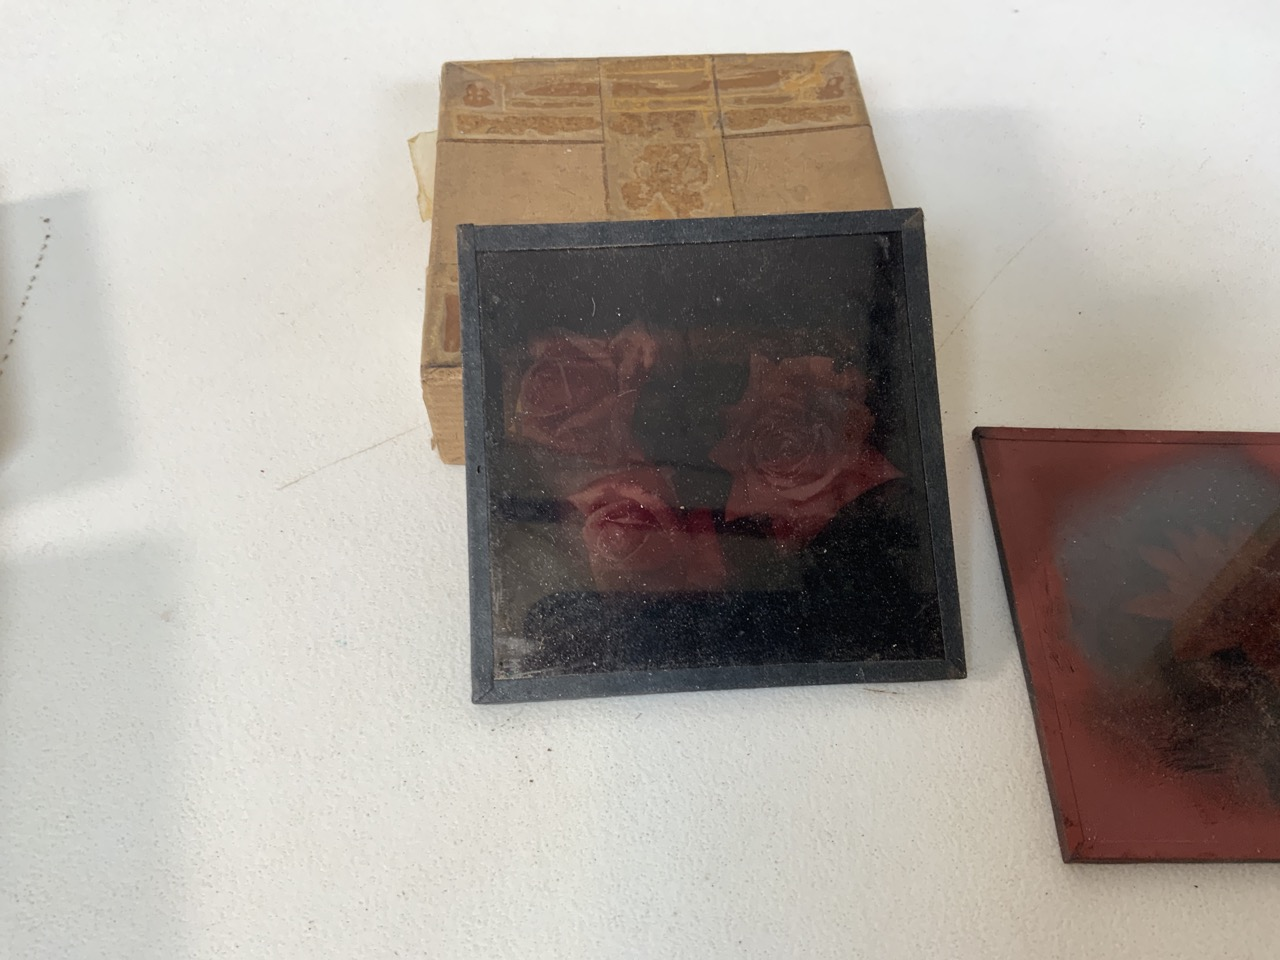 A collection of photographers glass plates including images of flowers, playing cards and - Image 3 of 4